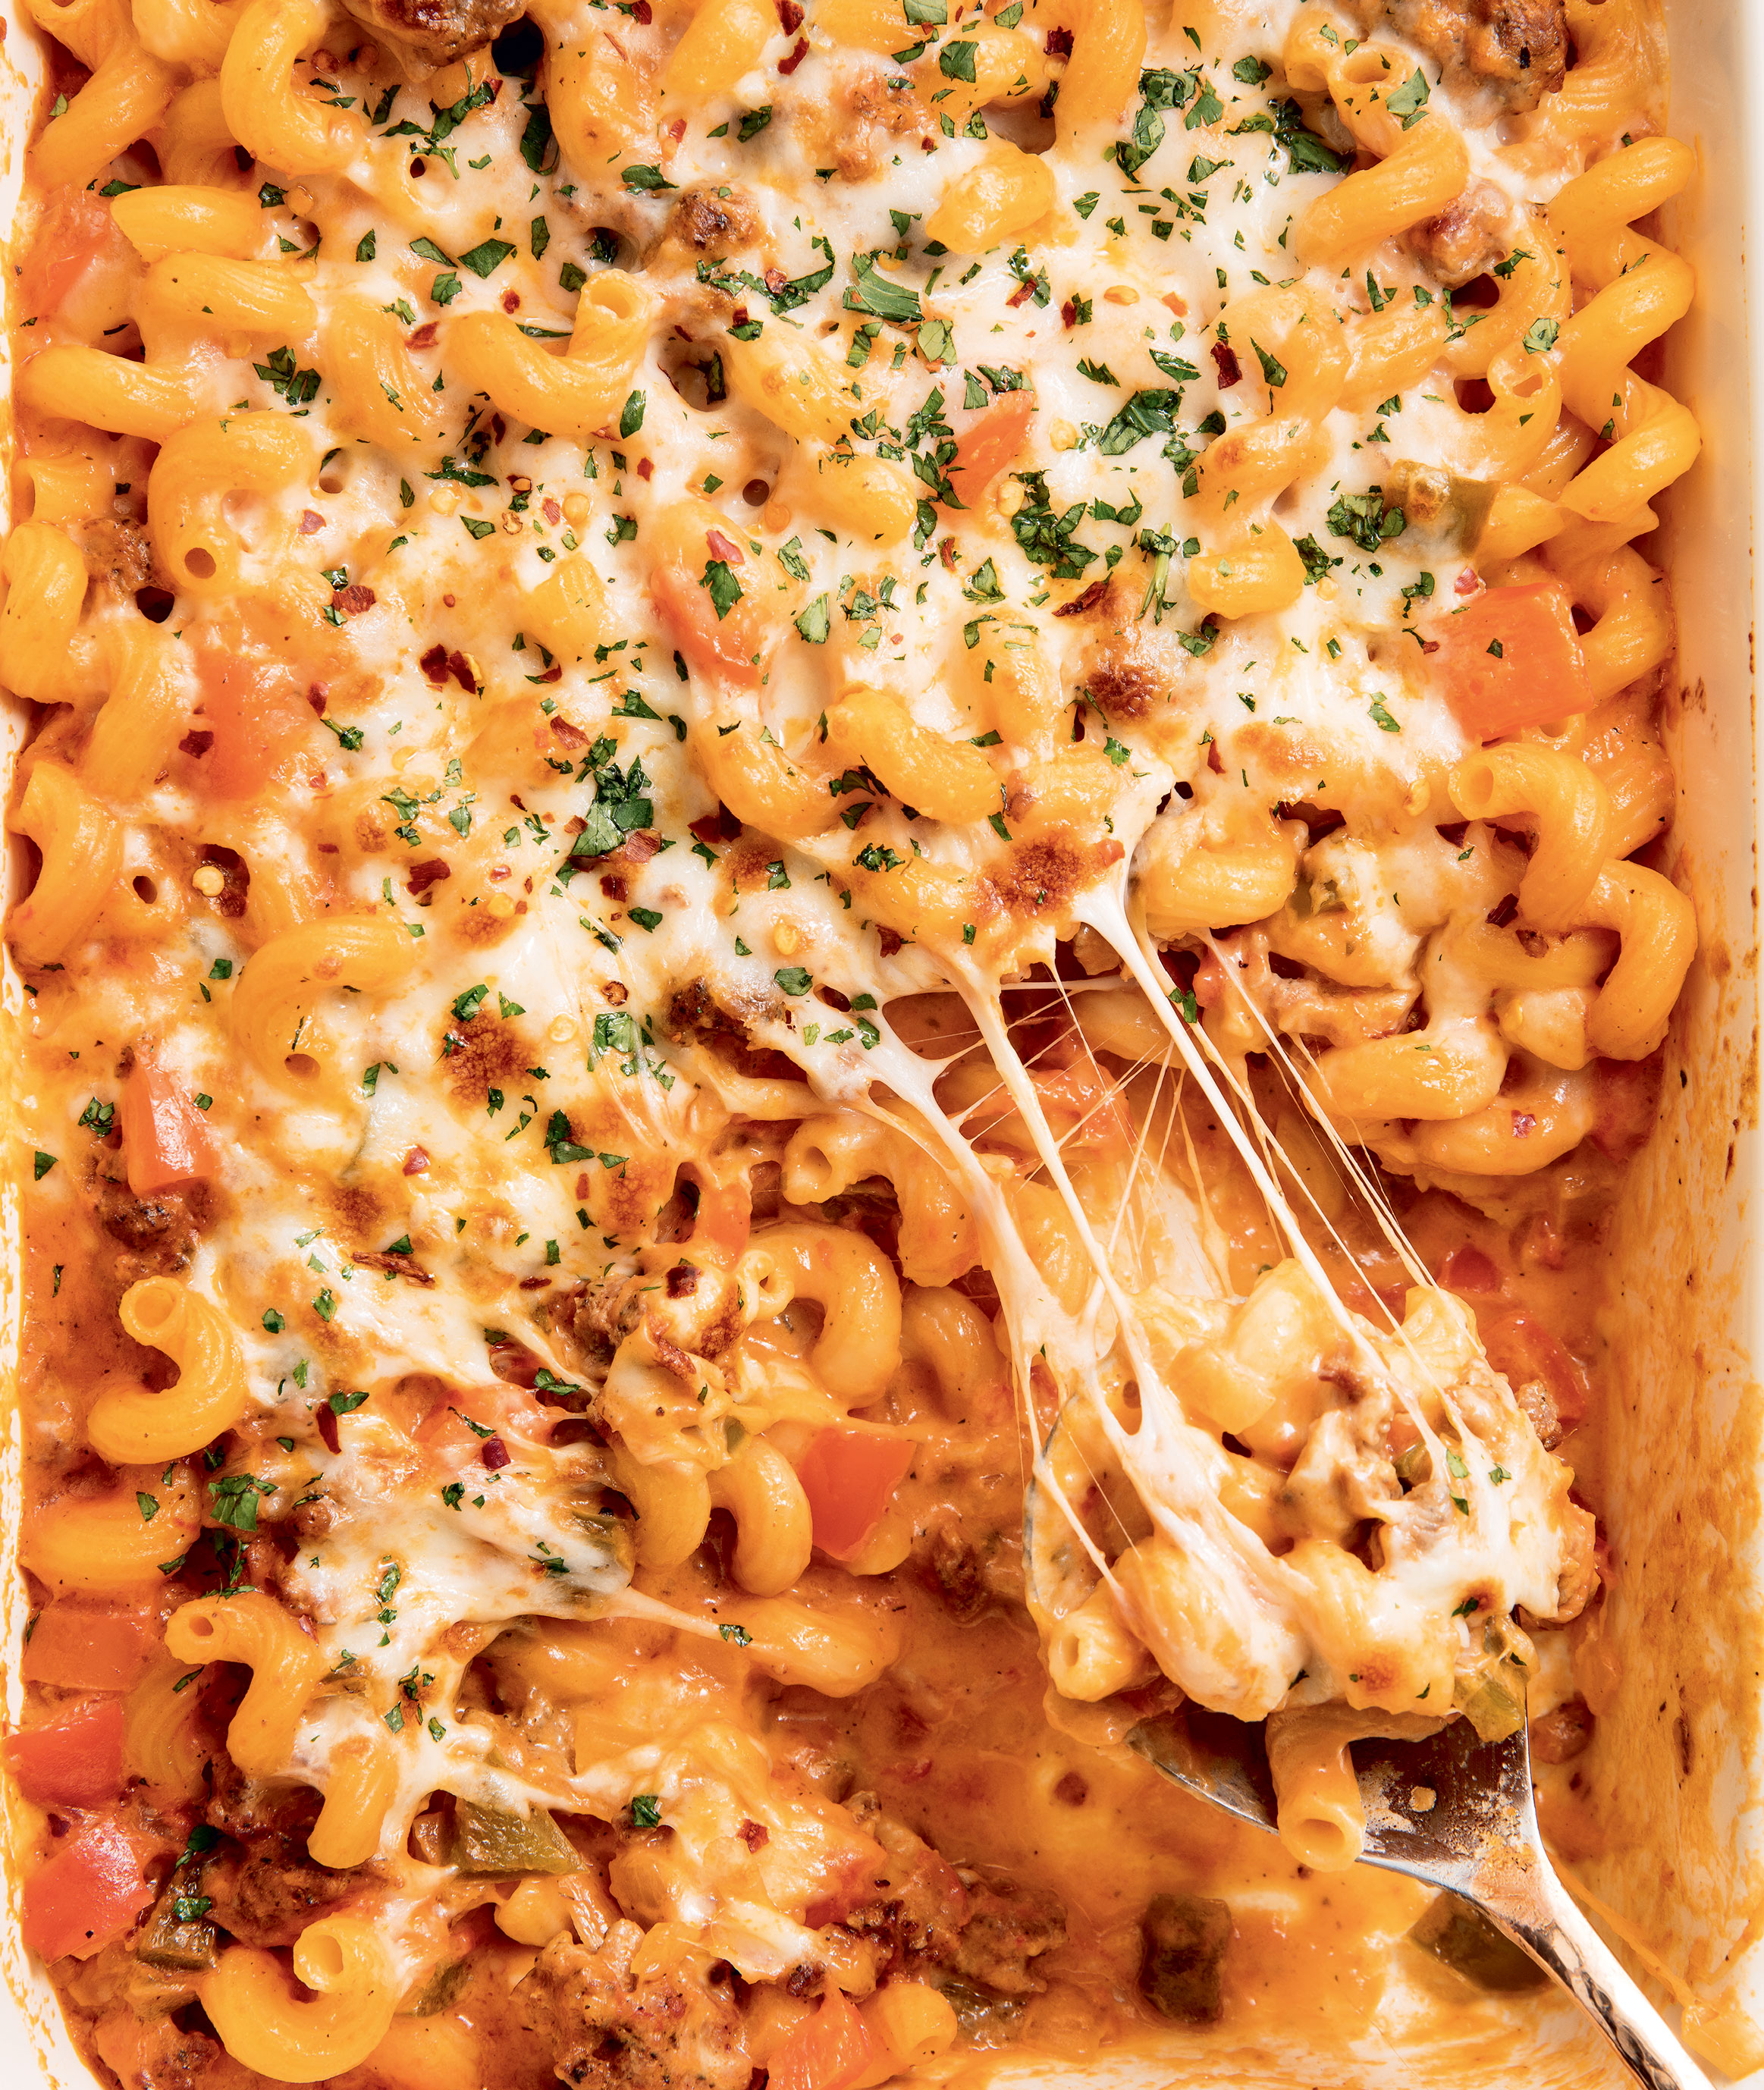 Baked Italian Mac and Cheese (Delish Cookbook), Photo by Ethan Calabrese